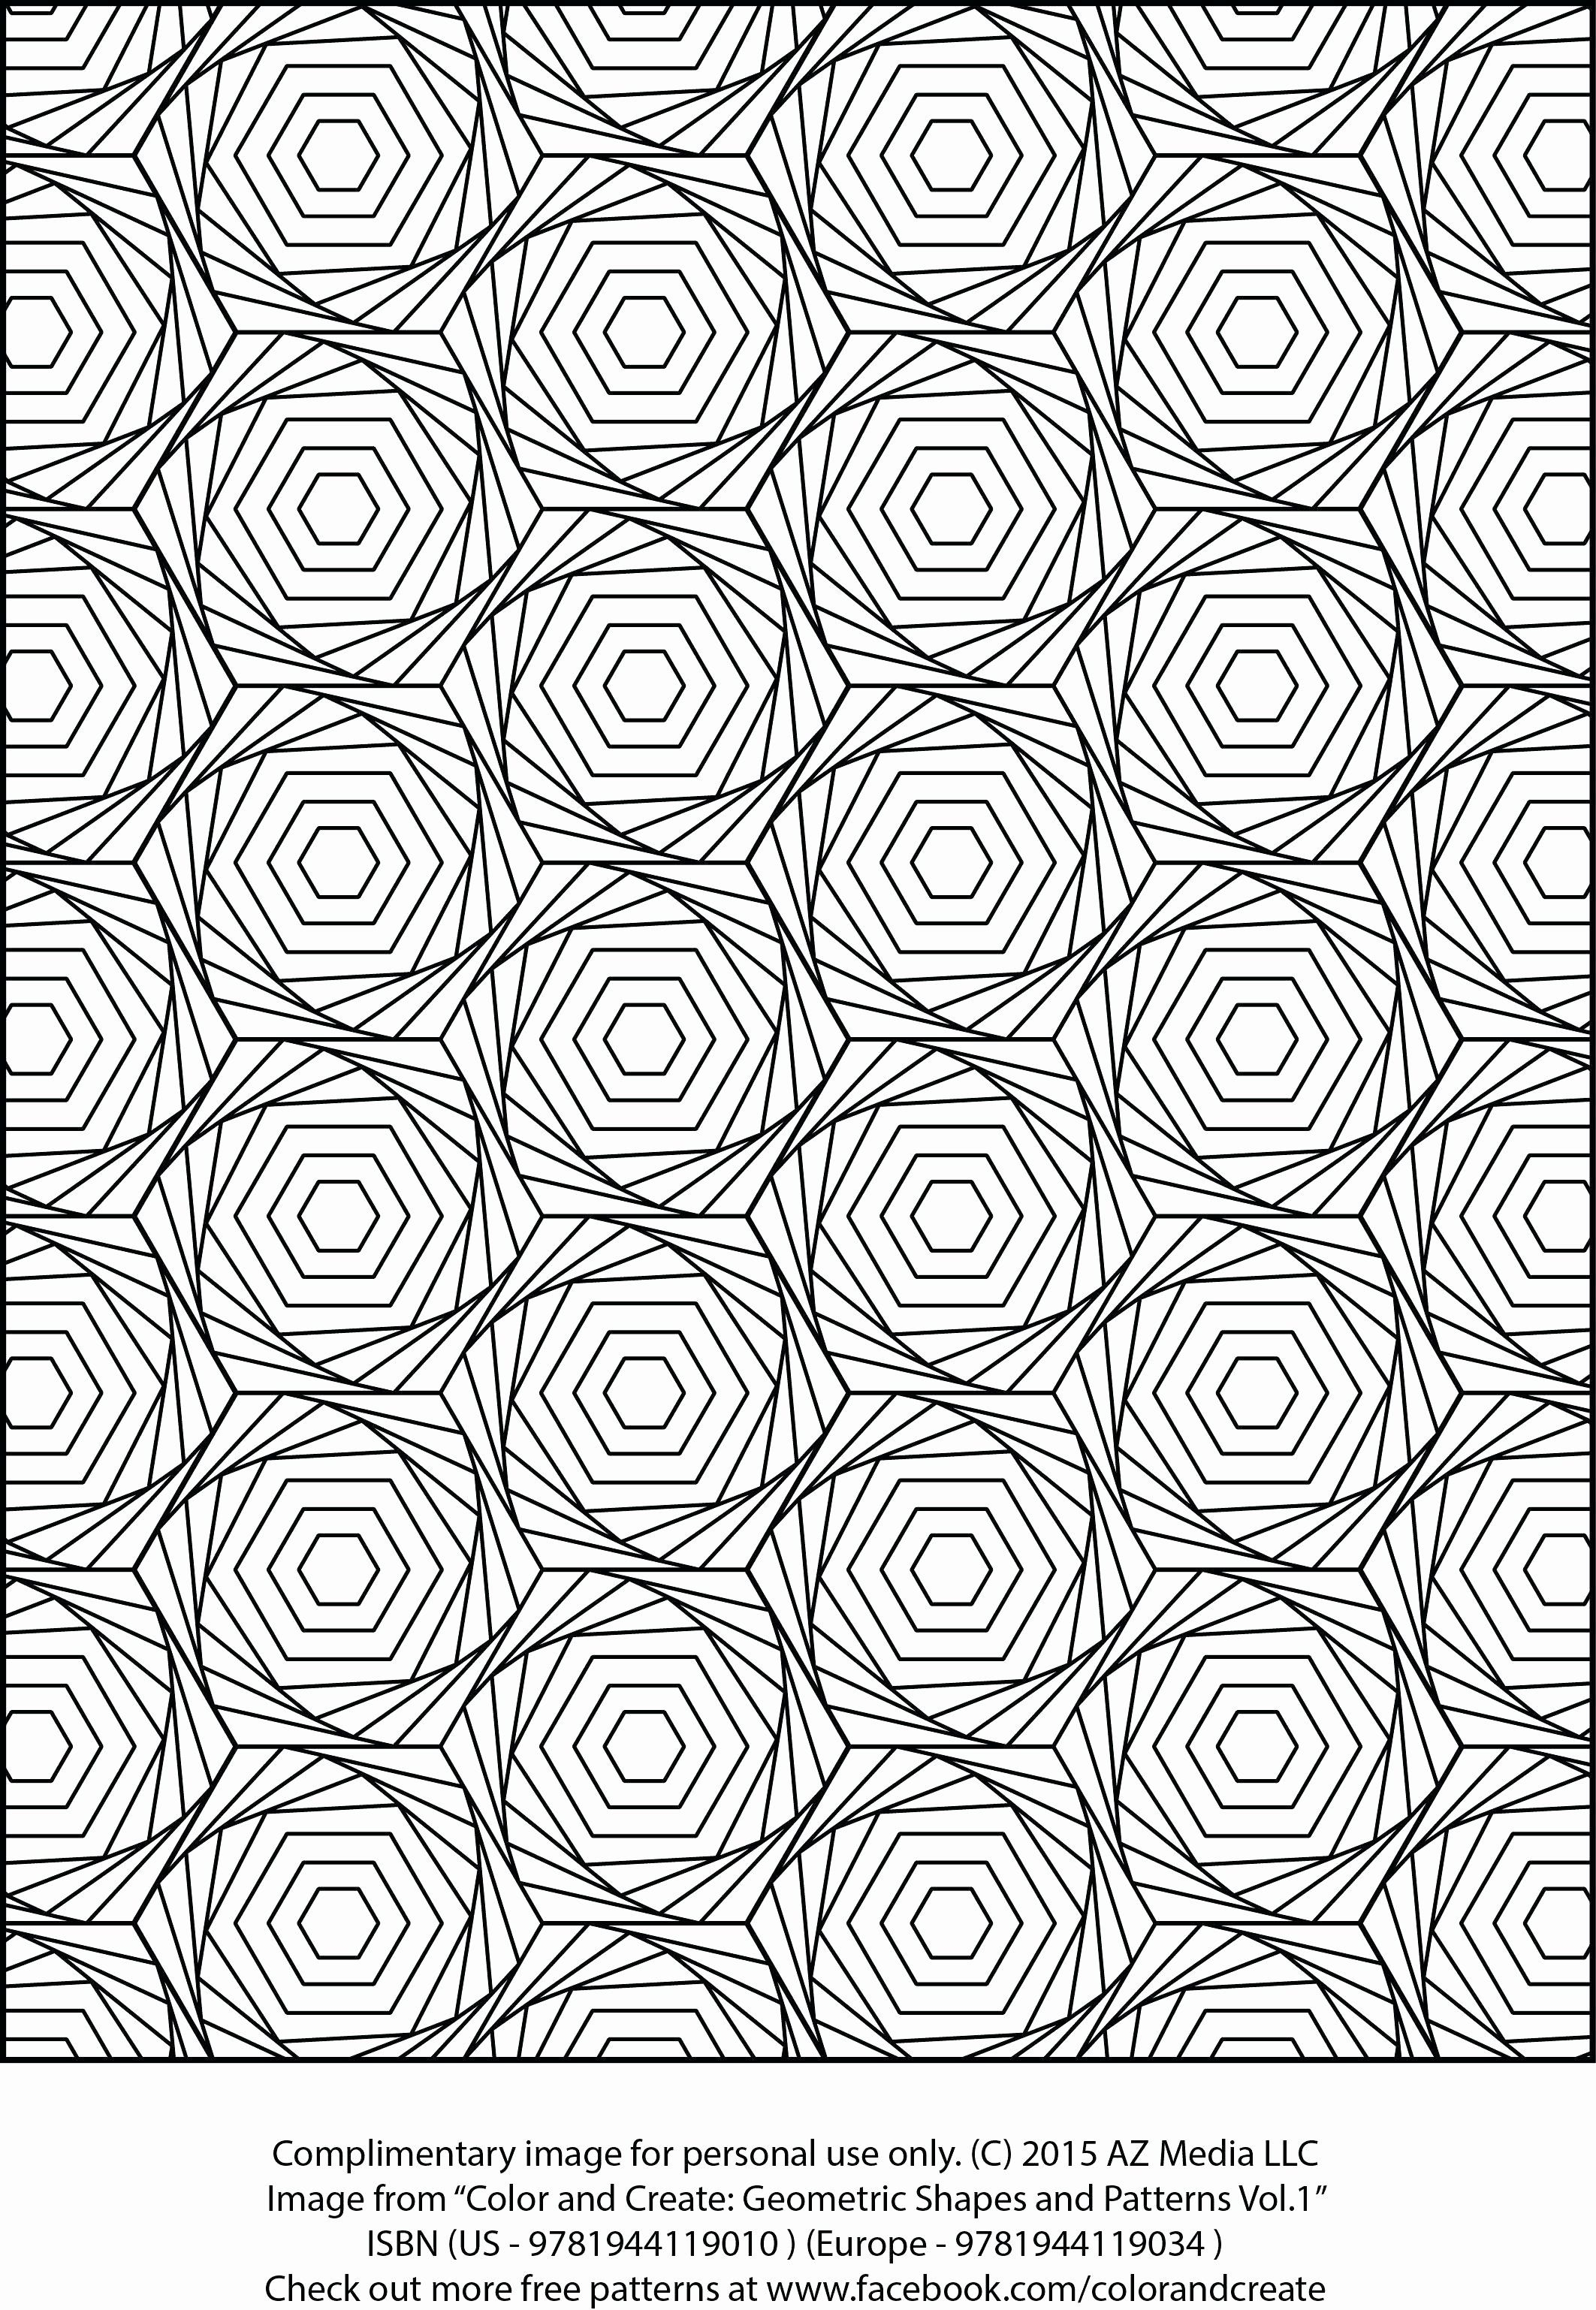 Geometrip Com Free Geometric Coloring Designs Shapes Geometric Coloring Pages Abstract Coloring Pages Pattern Coloring Pages